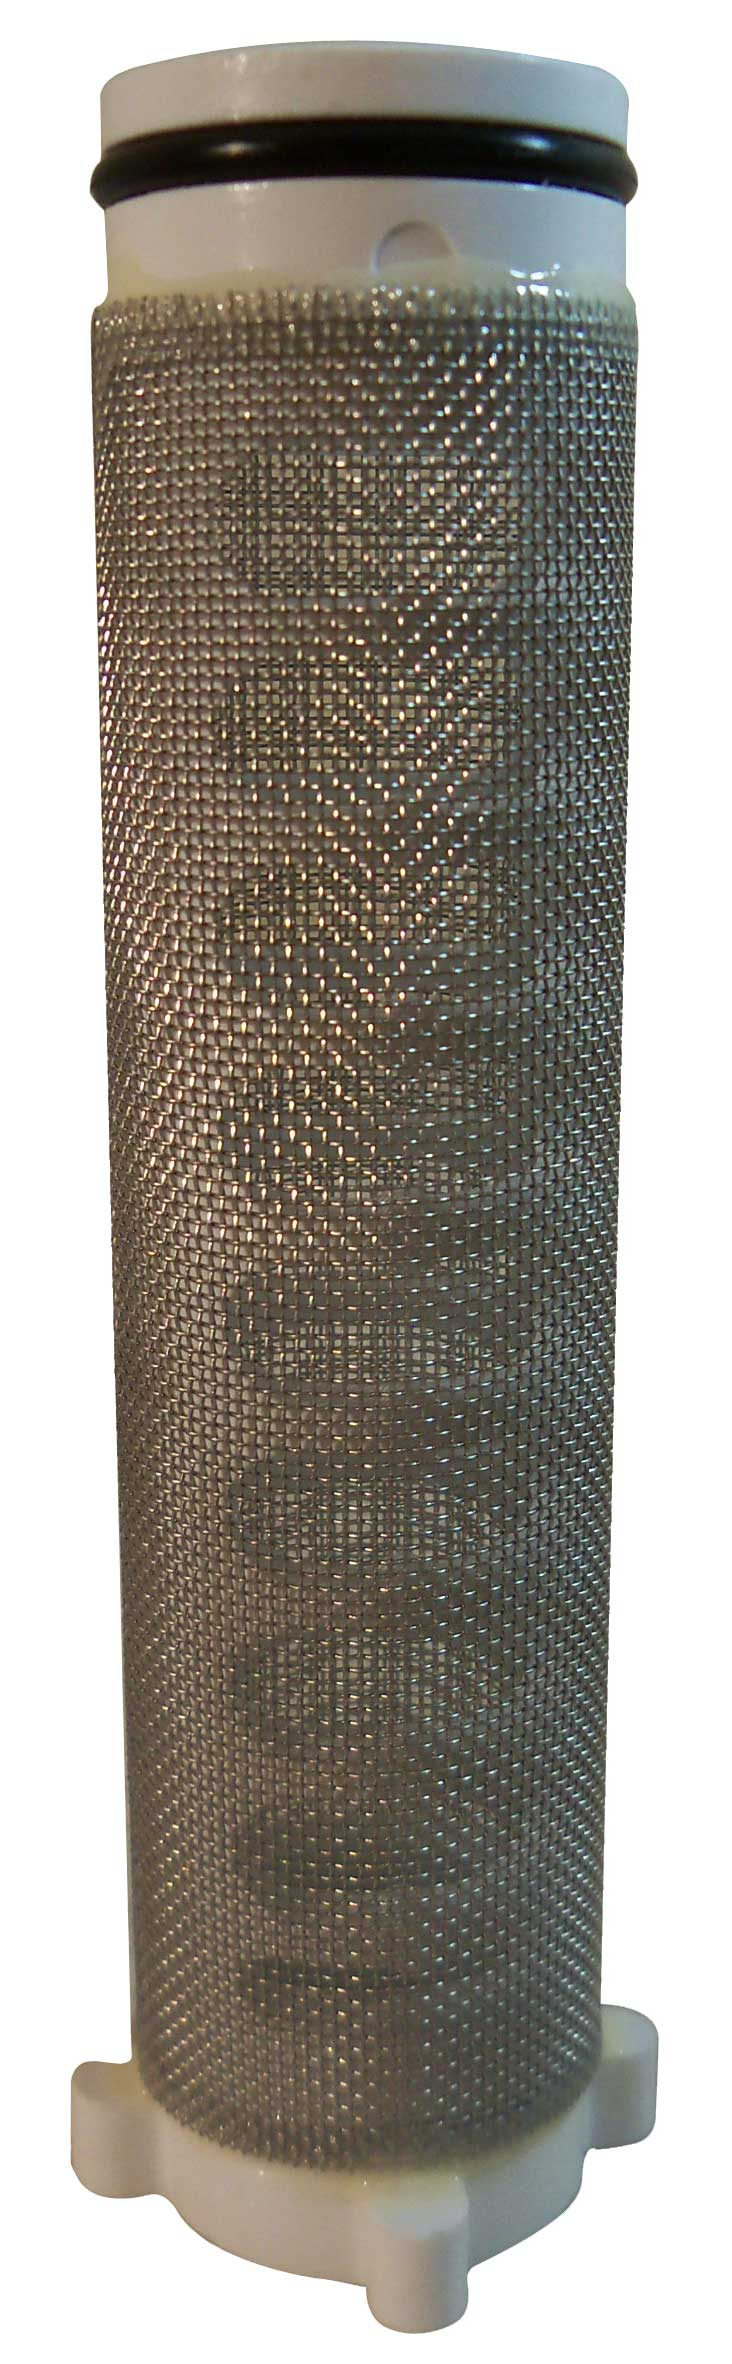 "Stainless Steel Filter Screen for Rusco Hot Water Spin Down 3/4"" 60 Mesh"